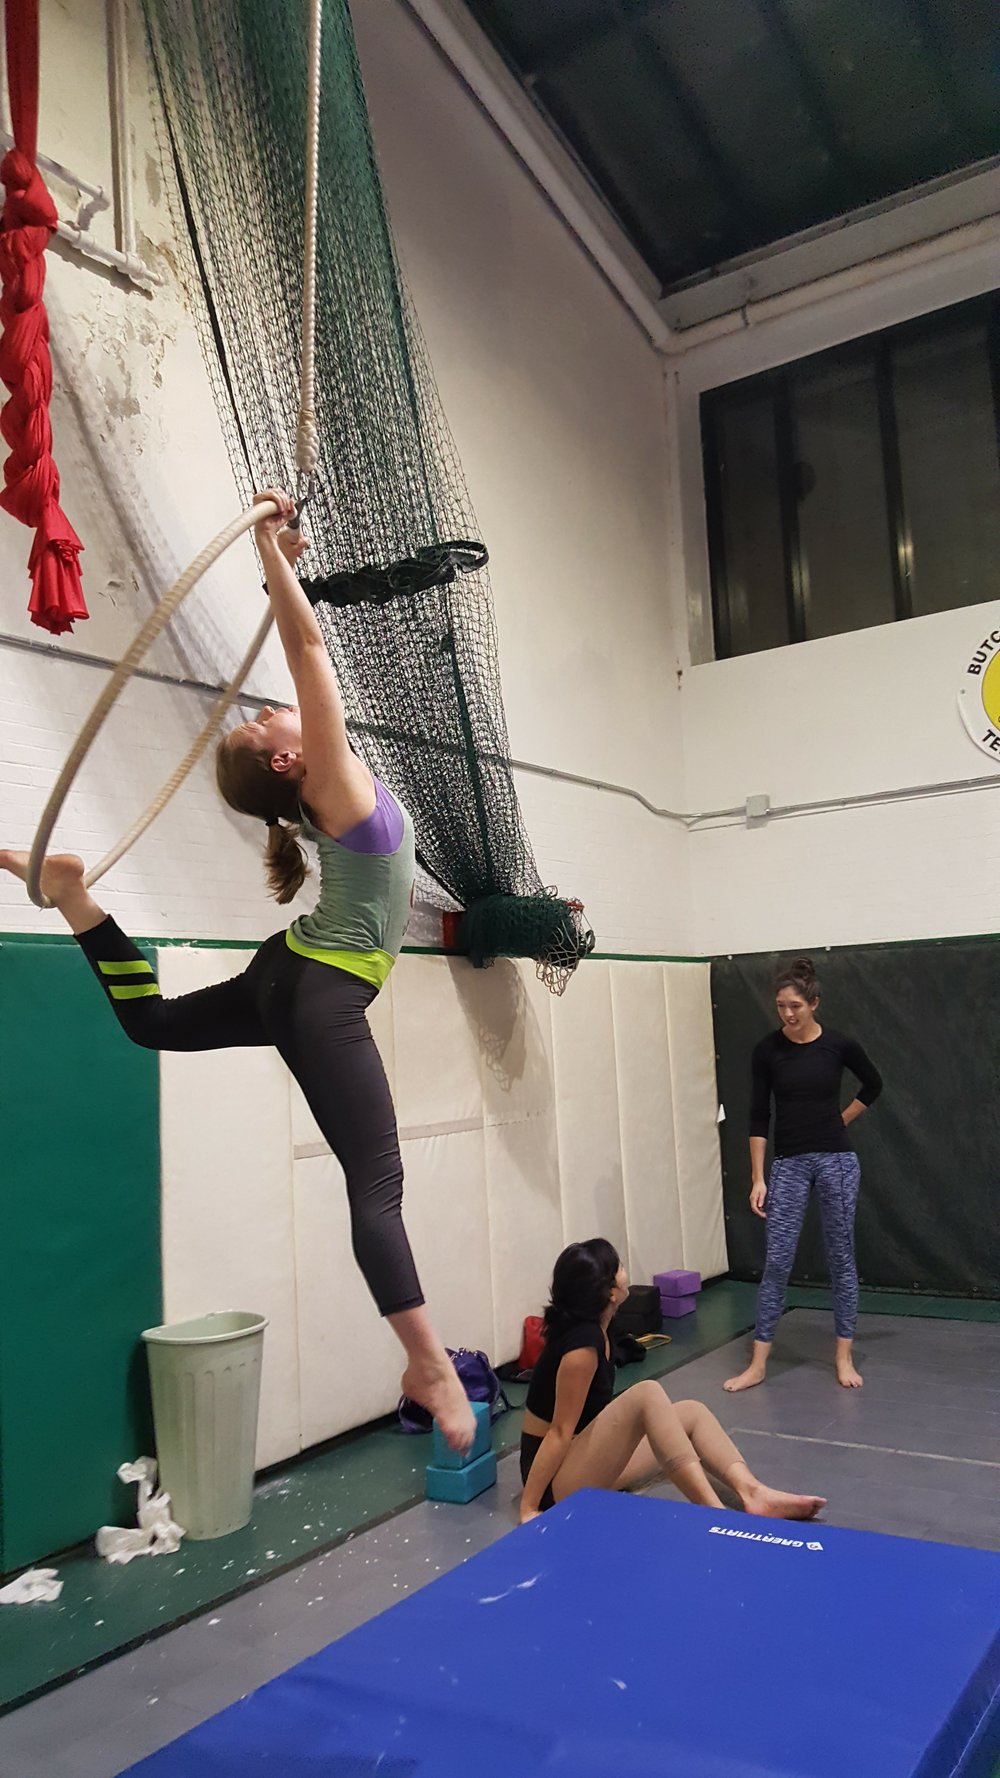 Brittany spins on an aerial hoop...even though her spotting isn't as good as it once was, she's still crushing it.